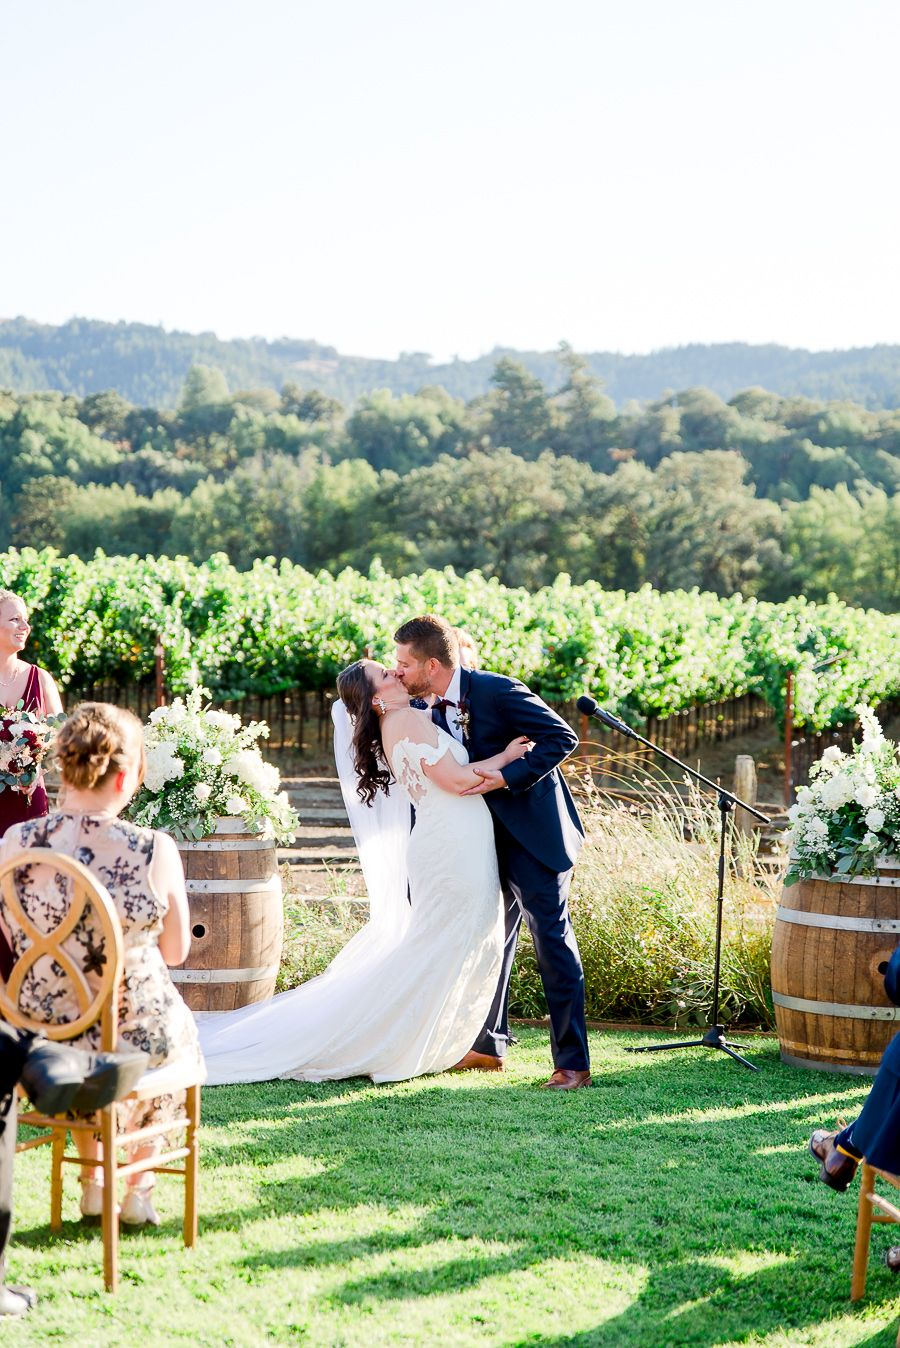 bride and groom's first kiss in front of mountains at outdoor Pennyroyal Farm wedding